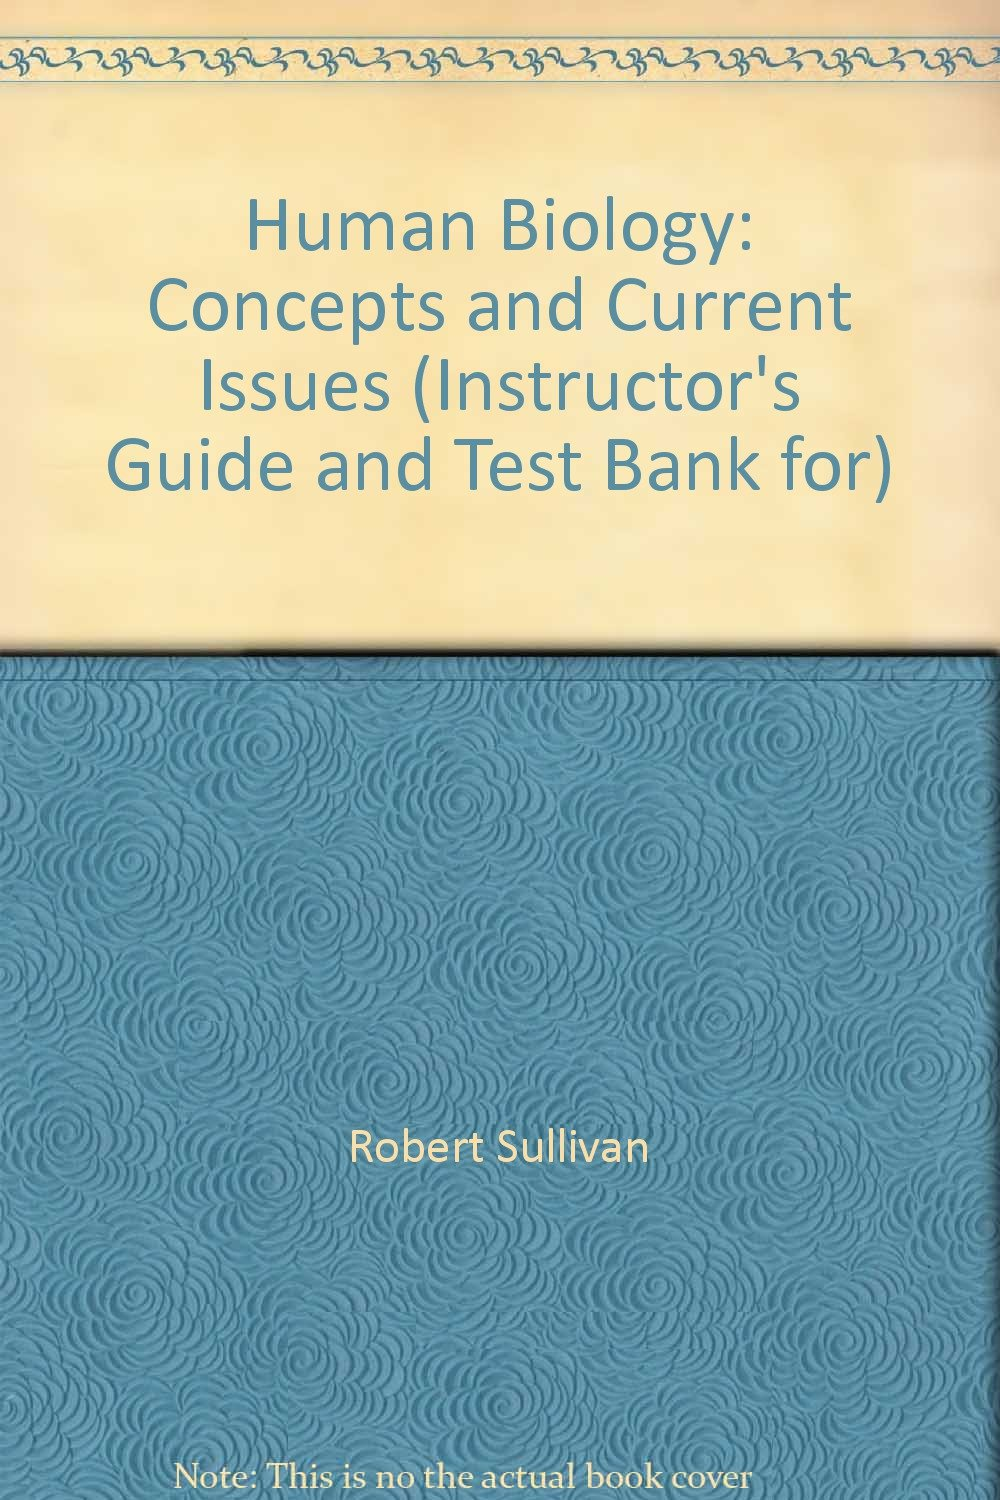 Human Biology: Concepts and Current Issues (Instructor's Guide and Test  Bank for): Robert Sullivan: 9780805367973: Amazon.com: Books